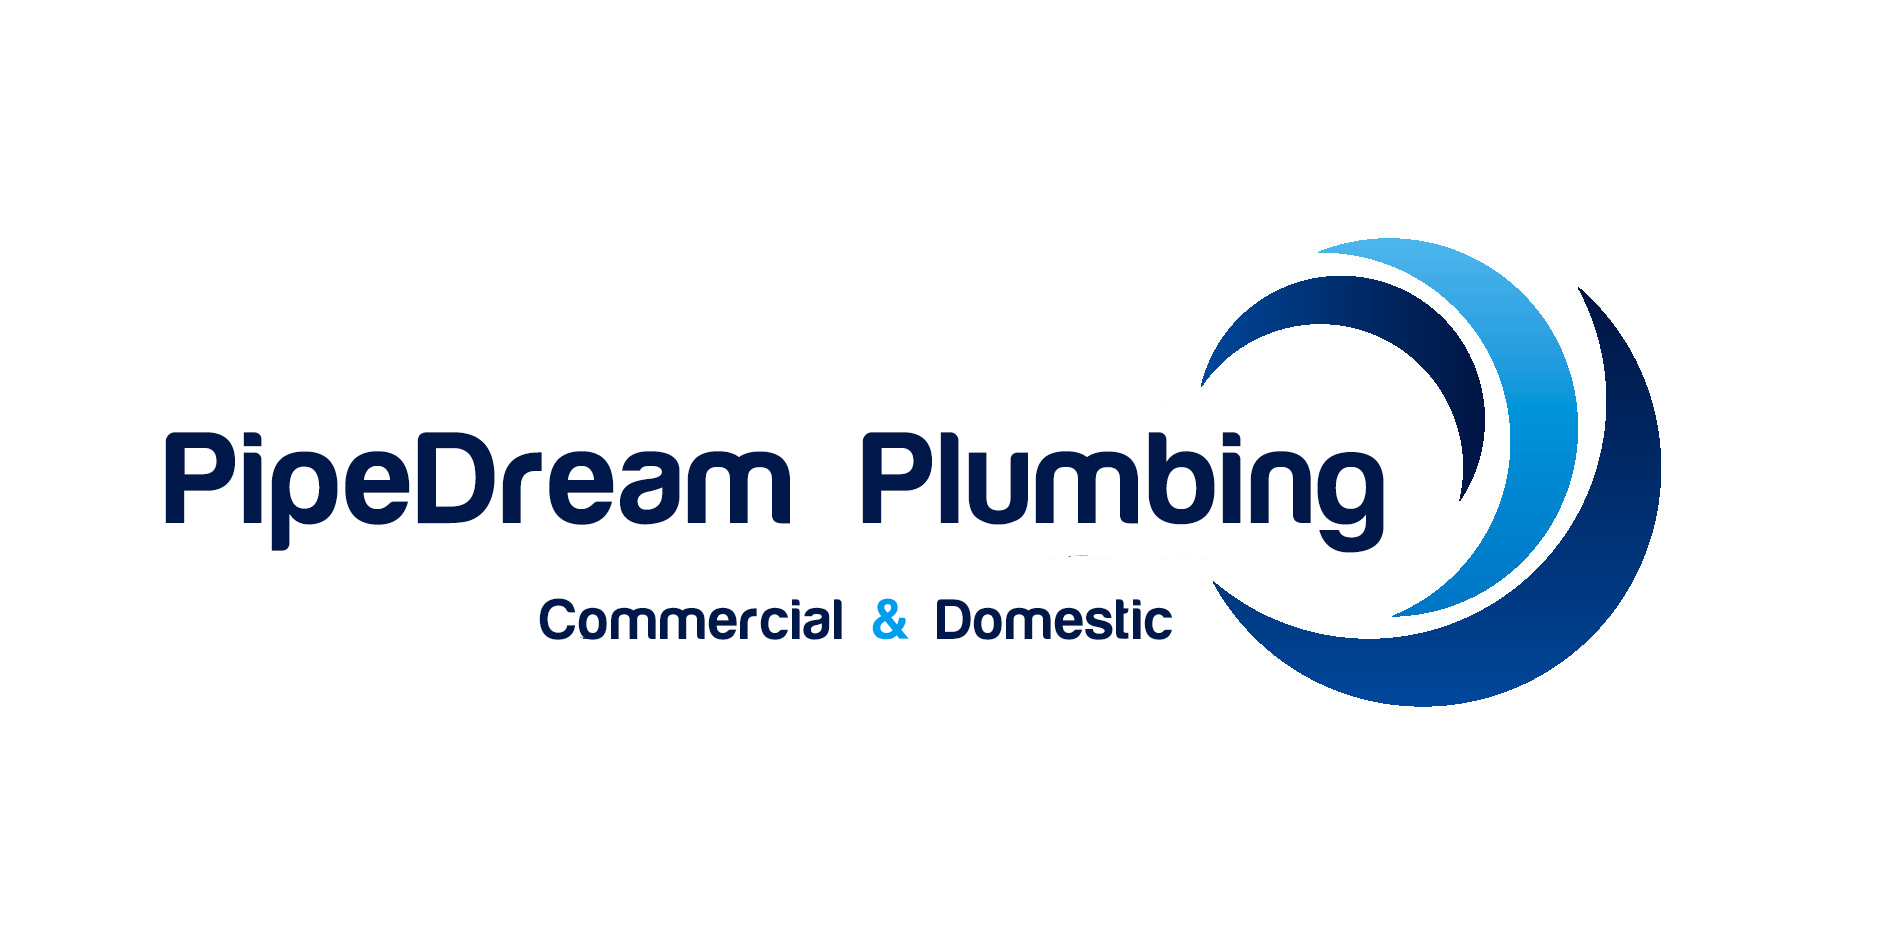 PipeDream Plumbing Verified Logo